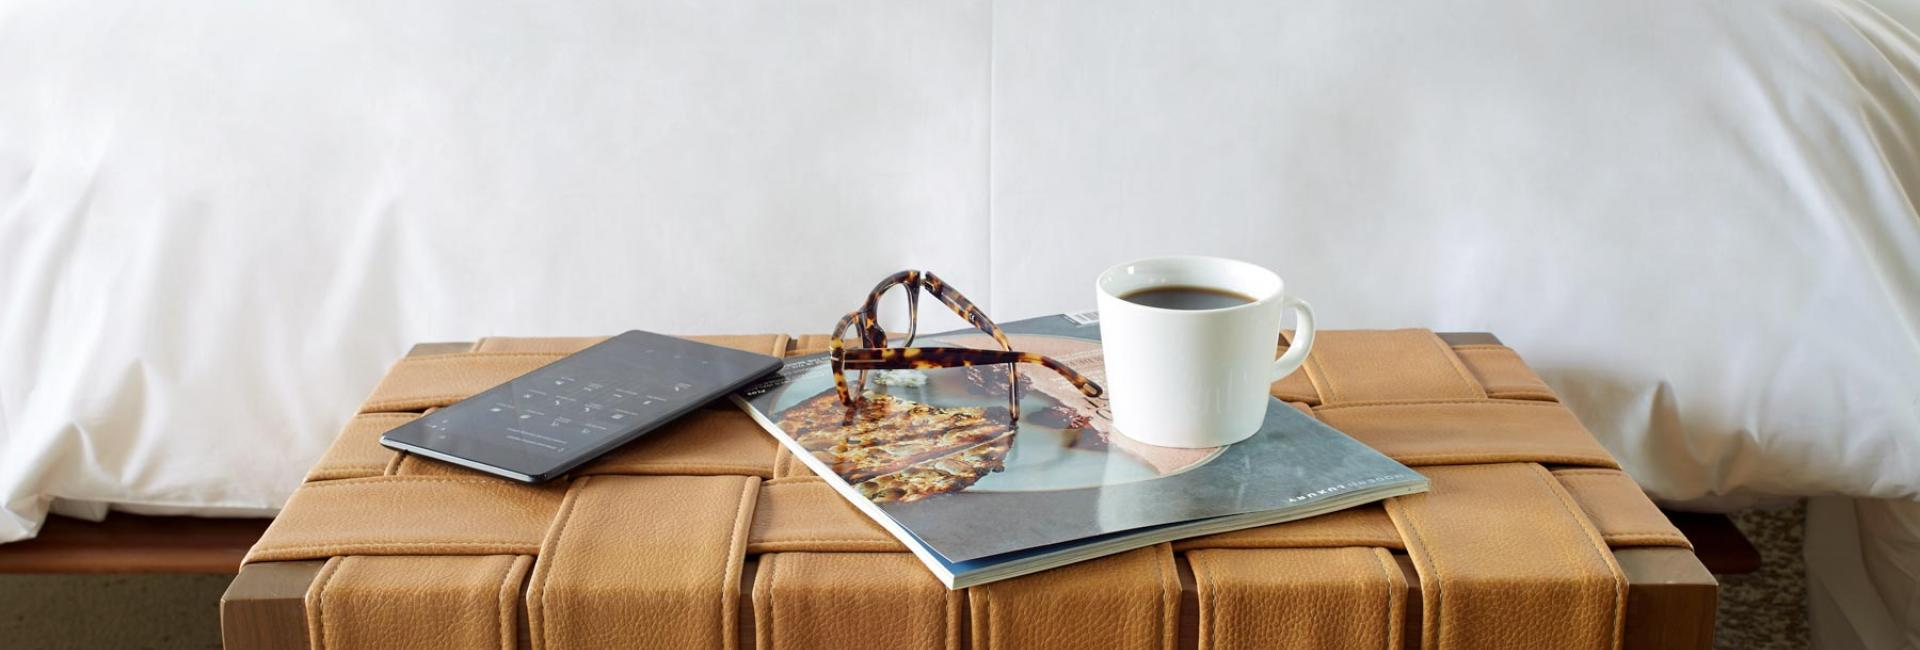 magazine, coffee and glasses